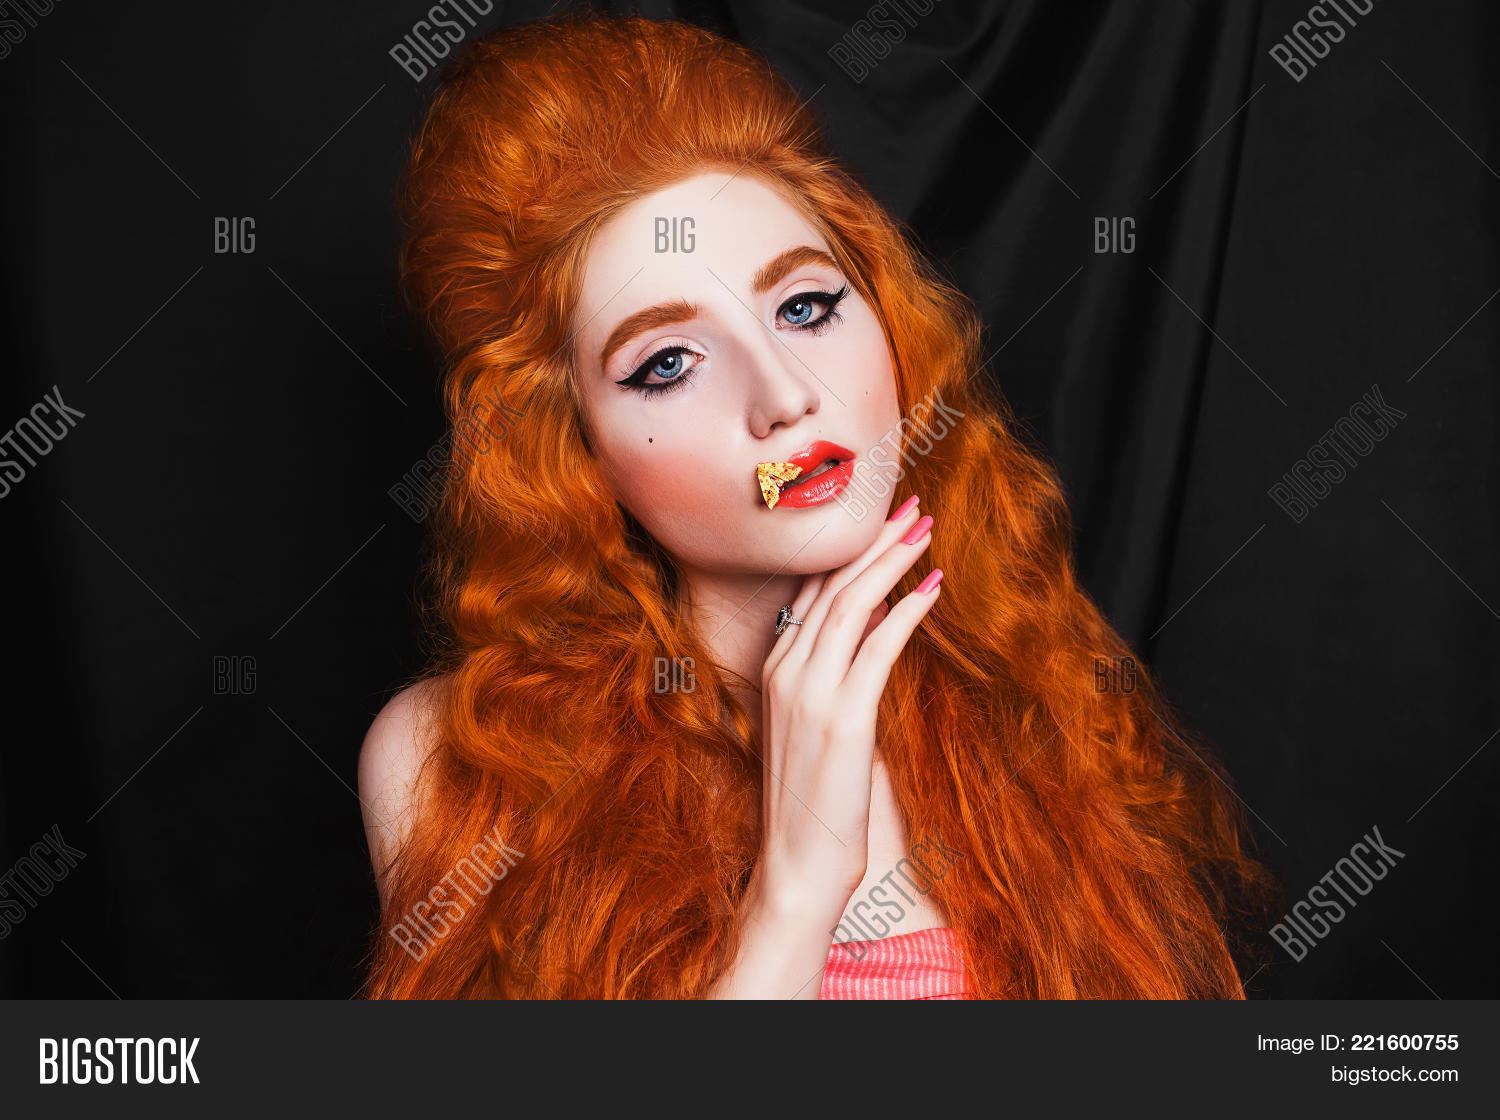 Know, redhead pale skin pink